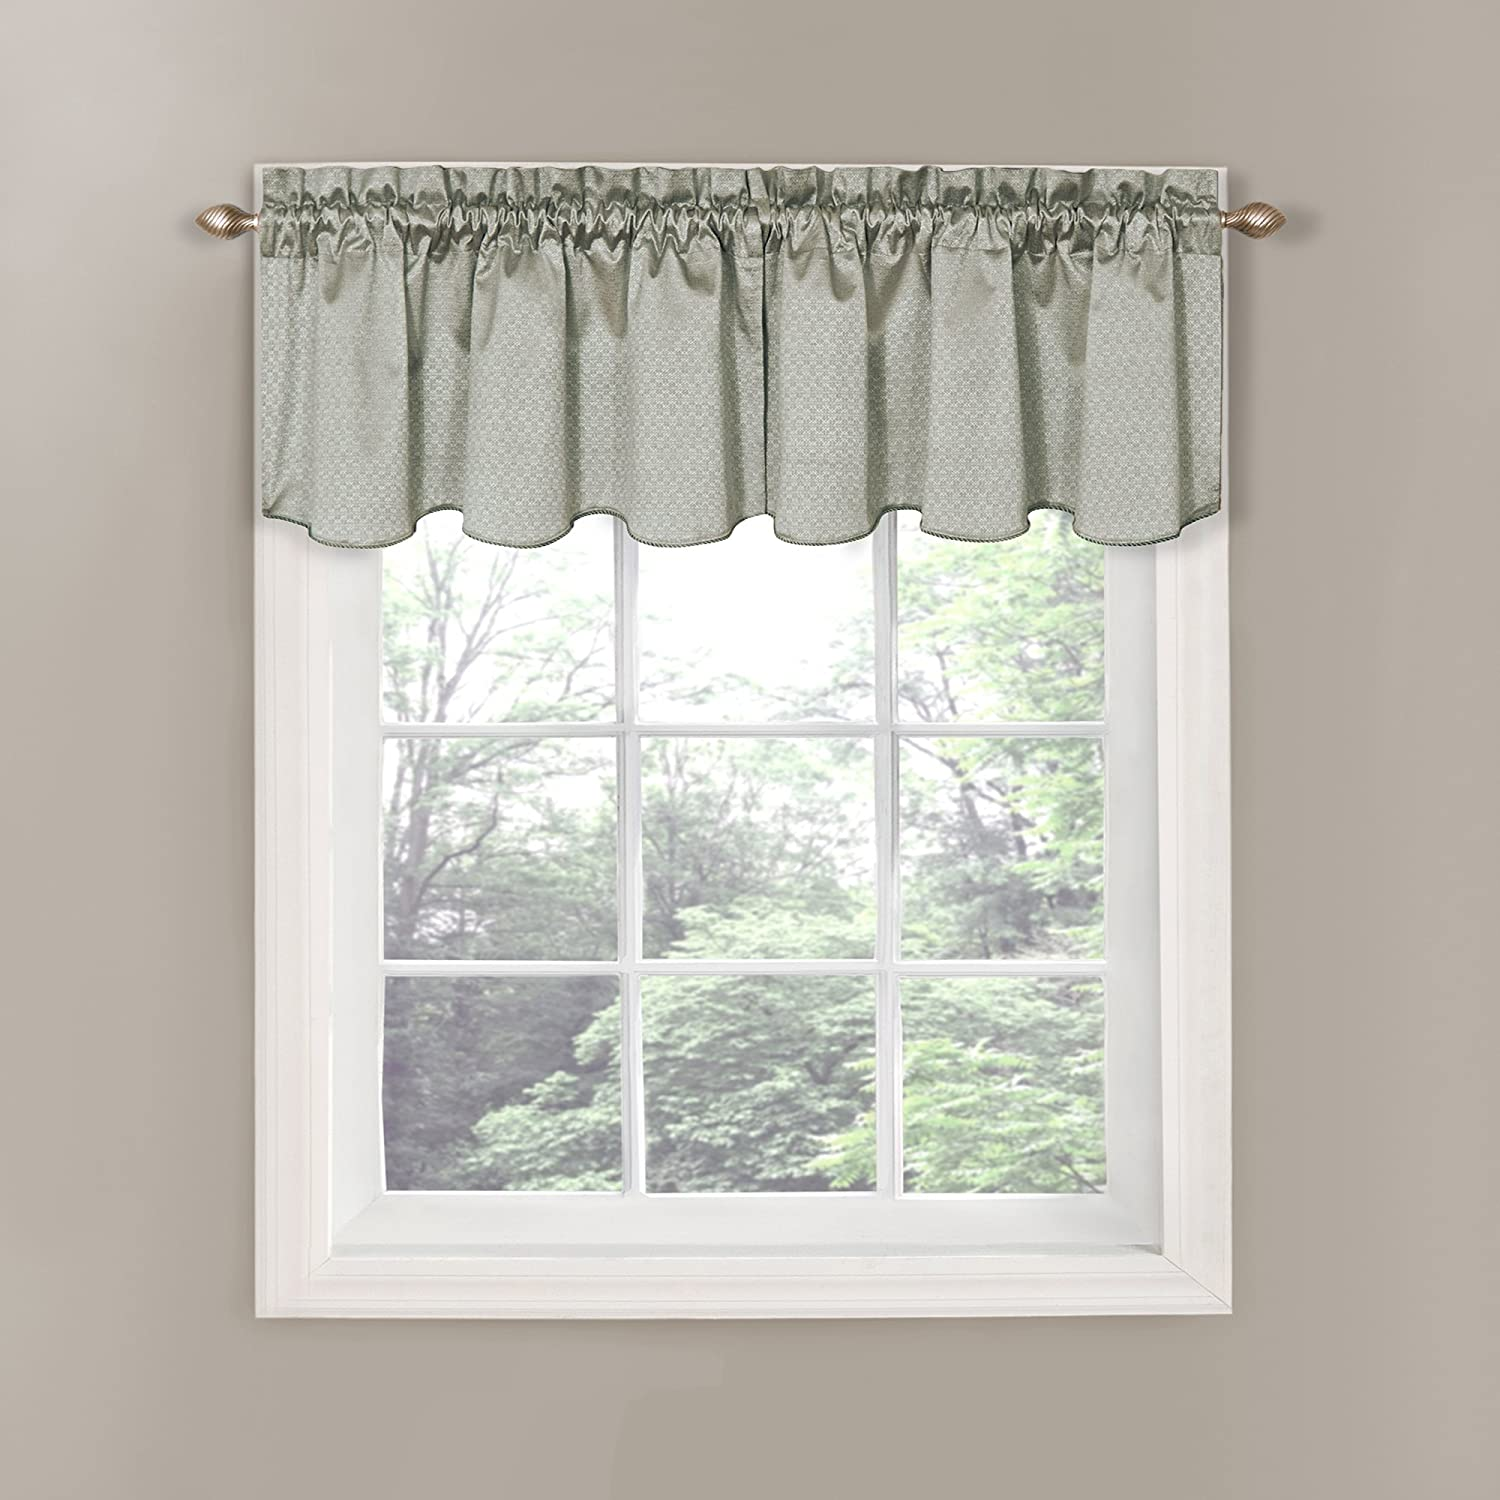 Eclipse Canova Blackout Window Valance, 42 by 21-Inch, Gray